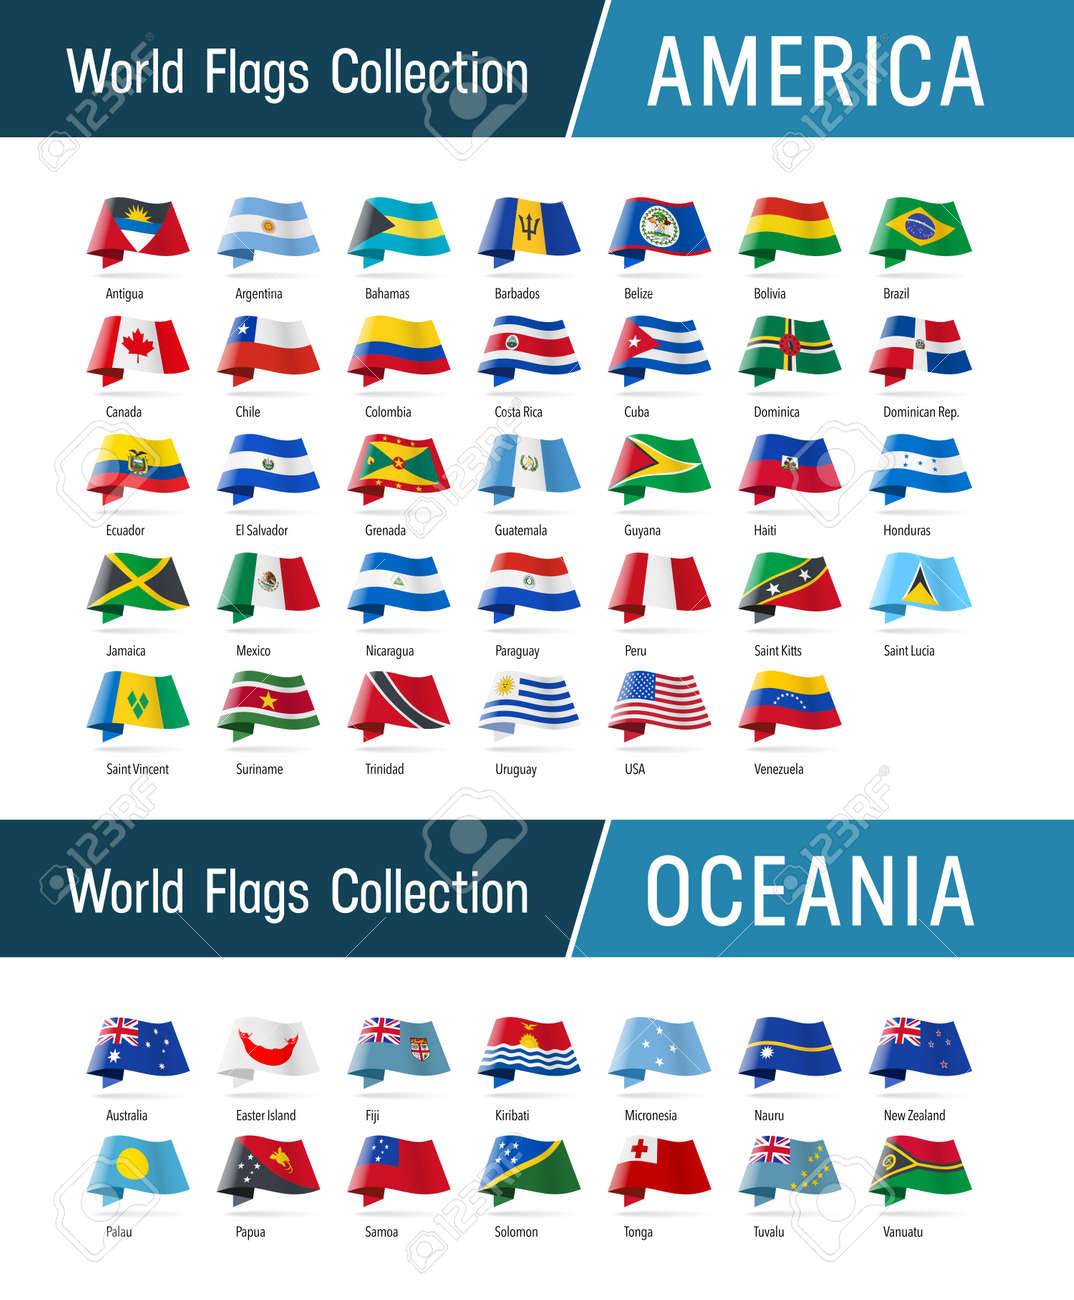 Flags of America and Oceania, waving in the wind. Icons pointing location, origin, language. Vector world flags collection. - 163517640